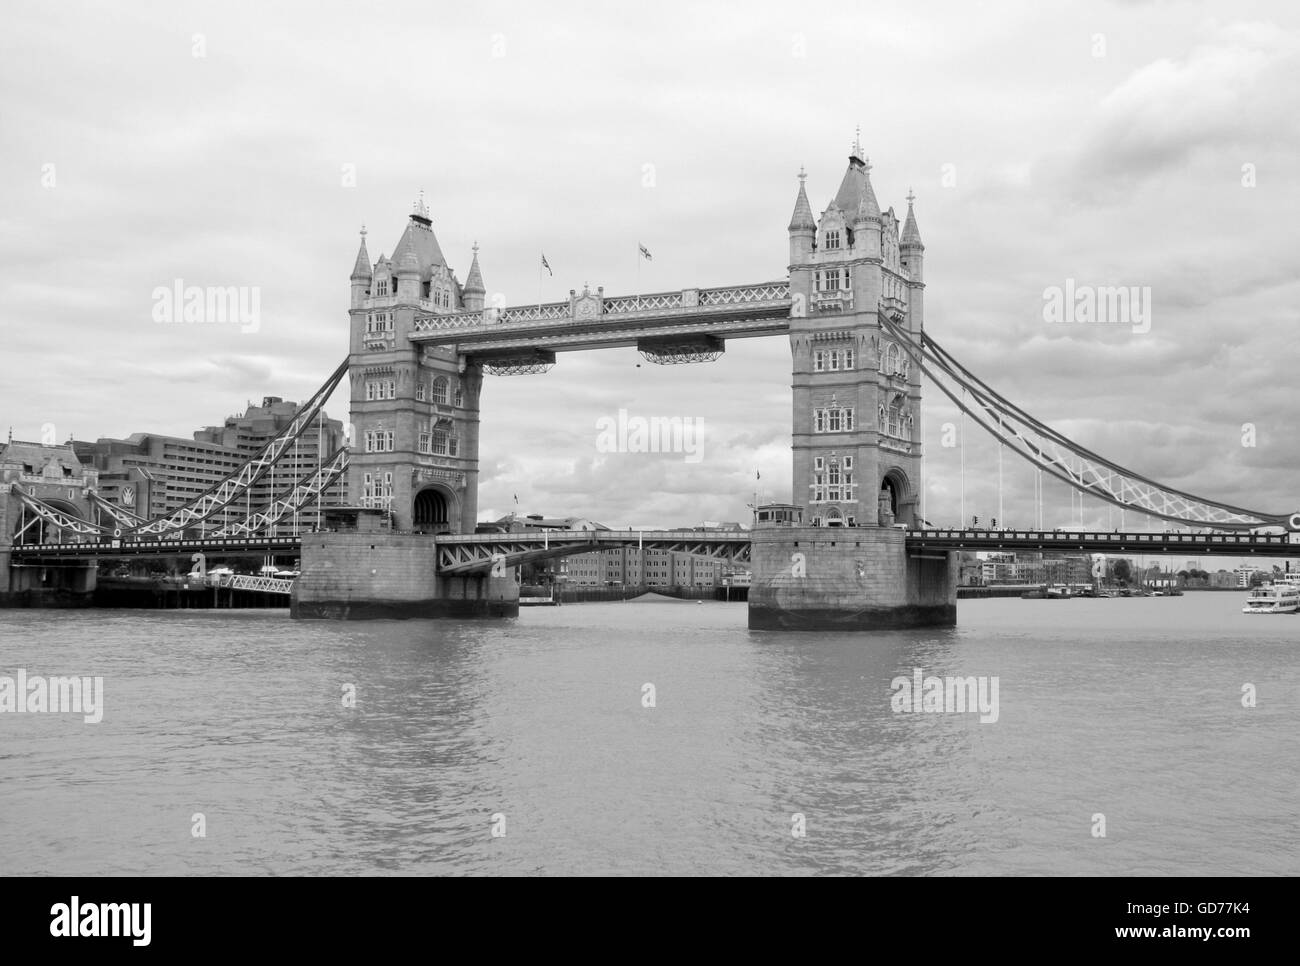 The London Bridge view - Stock Image